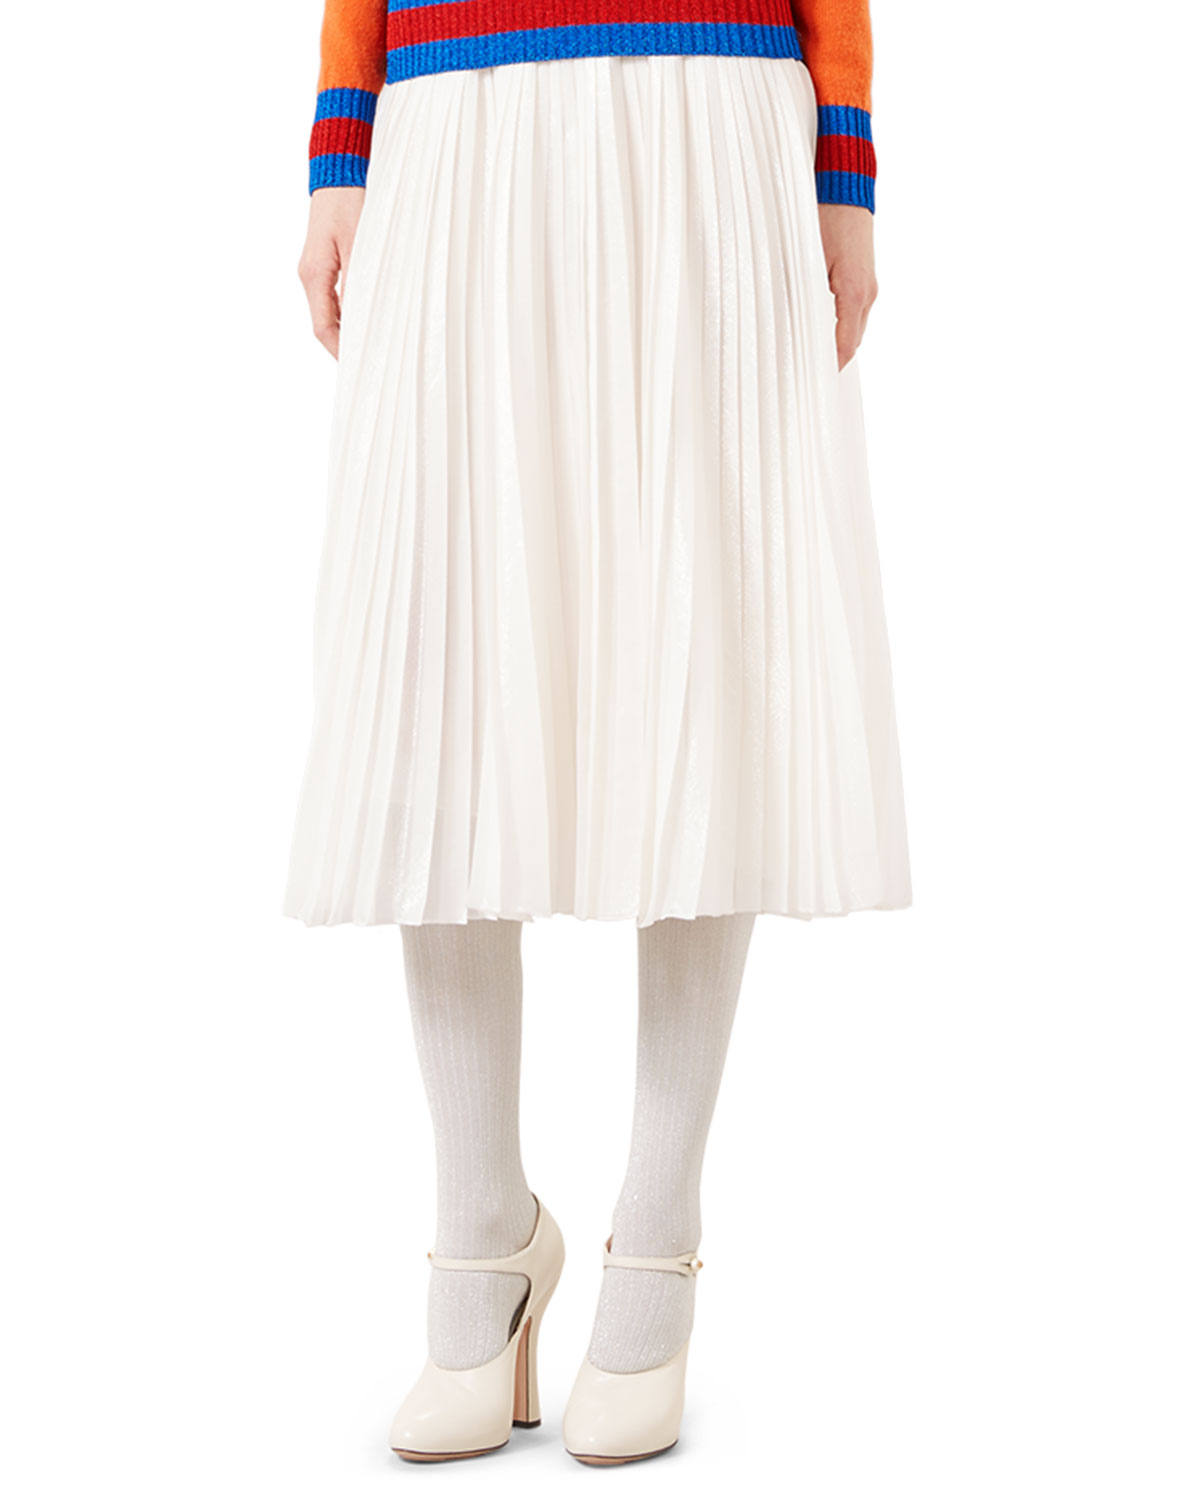 Iridescent Organdy Pleated Skirt, Ivory